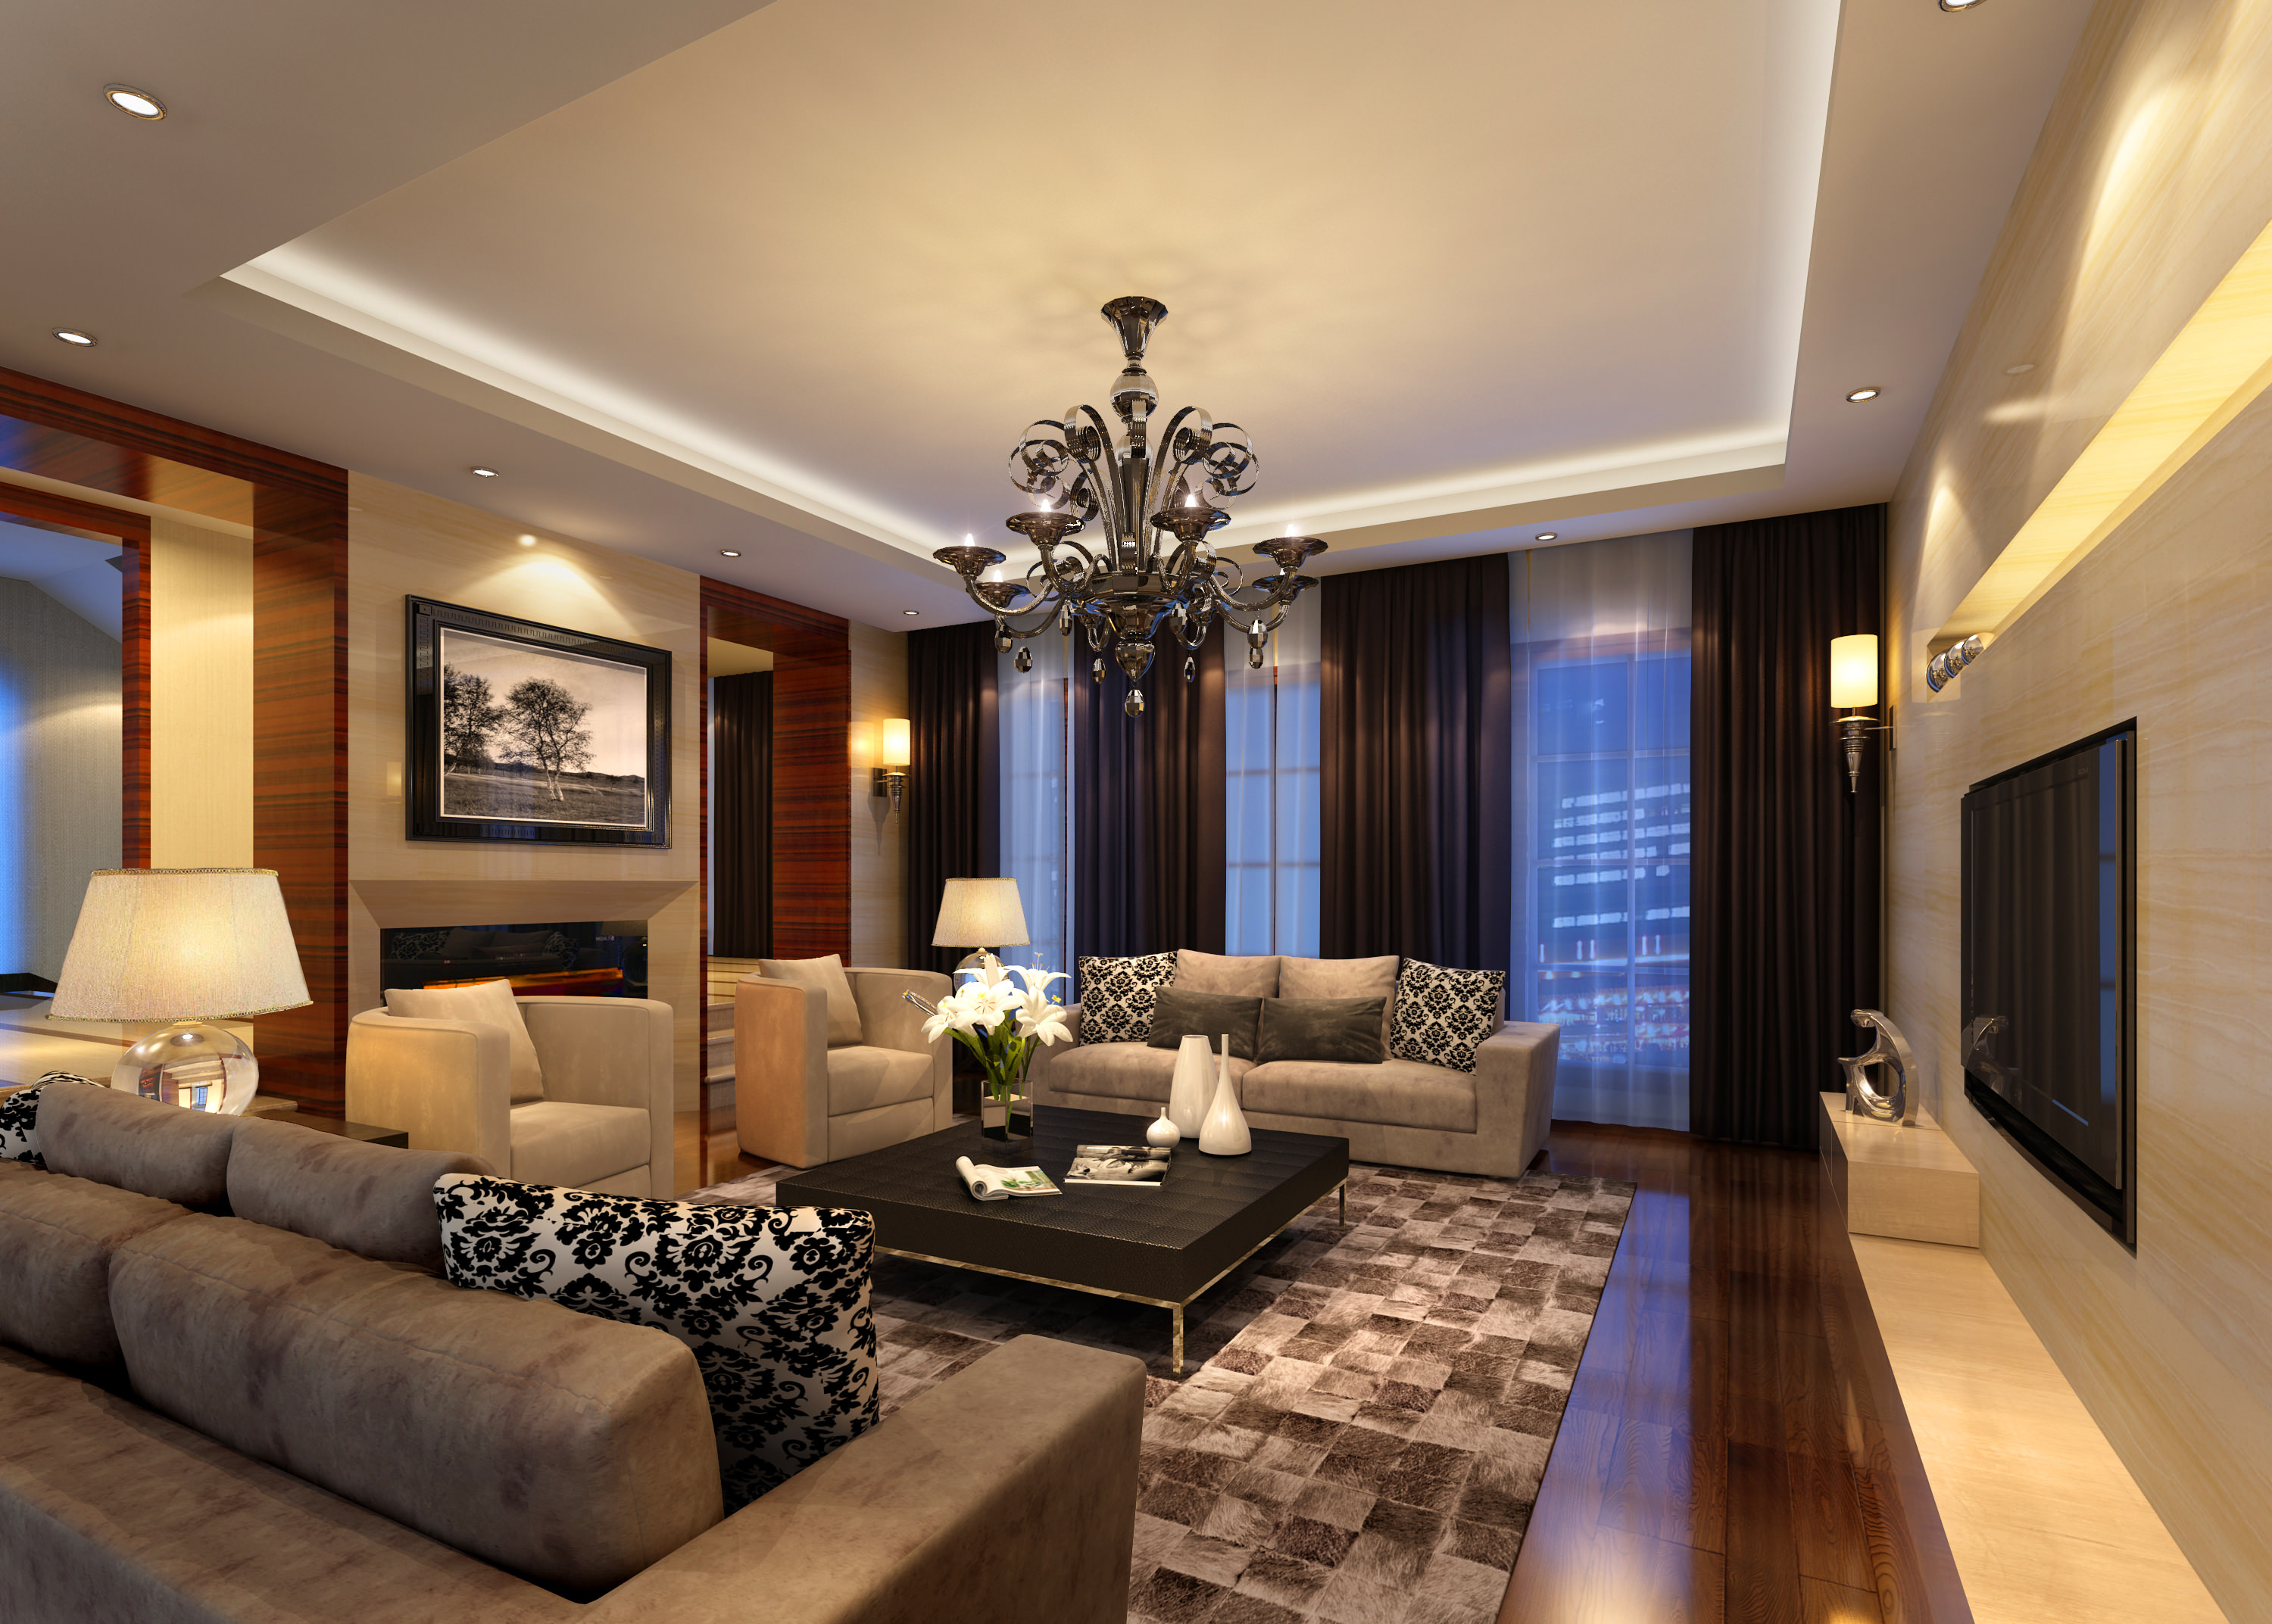 Living Room 3d Model living room living 3d model | cgtrader